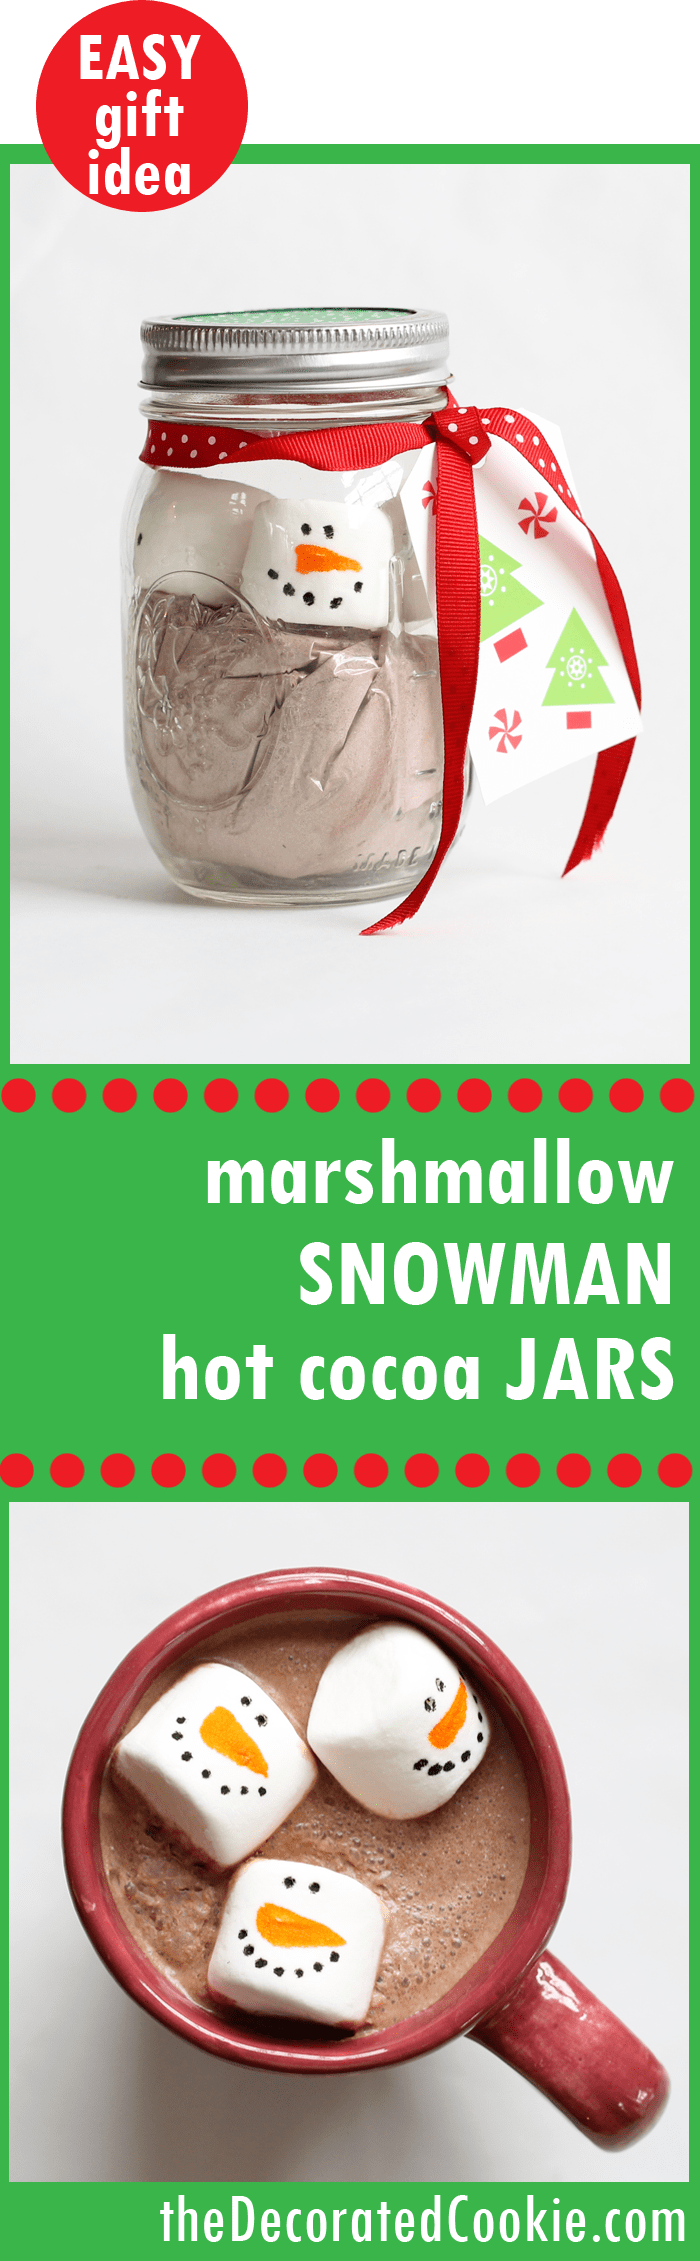 Marshmallow snowman hot cocoa jars, holiday gift idea. #christmasgift #homemadegiftidea #masonjargifts #marshmallowsnowman #hotcocoagift